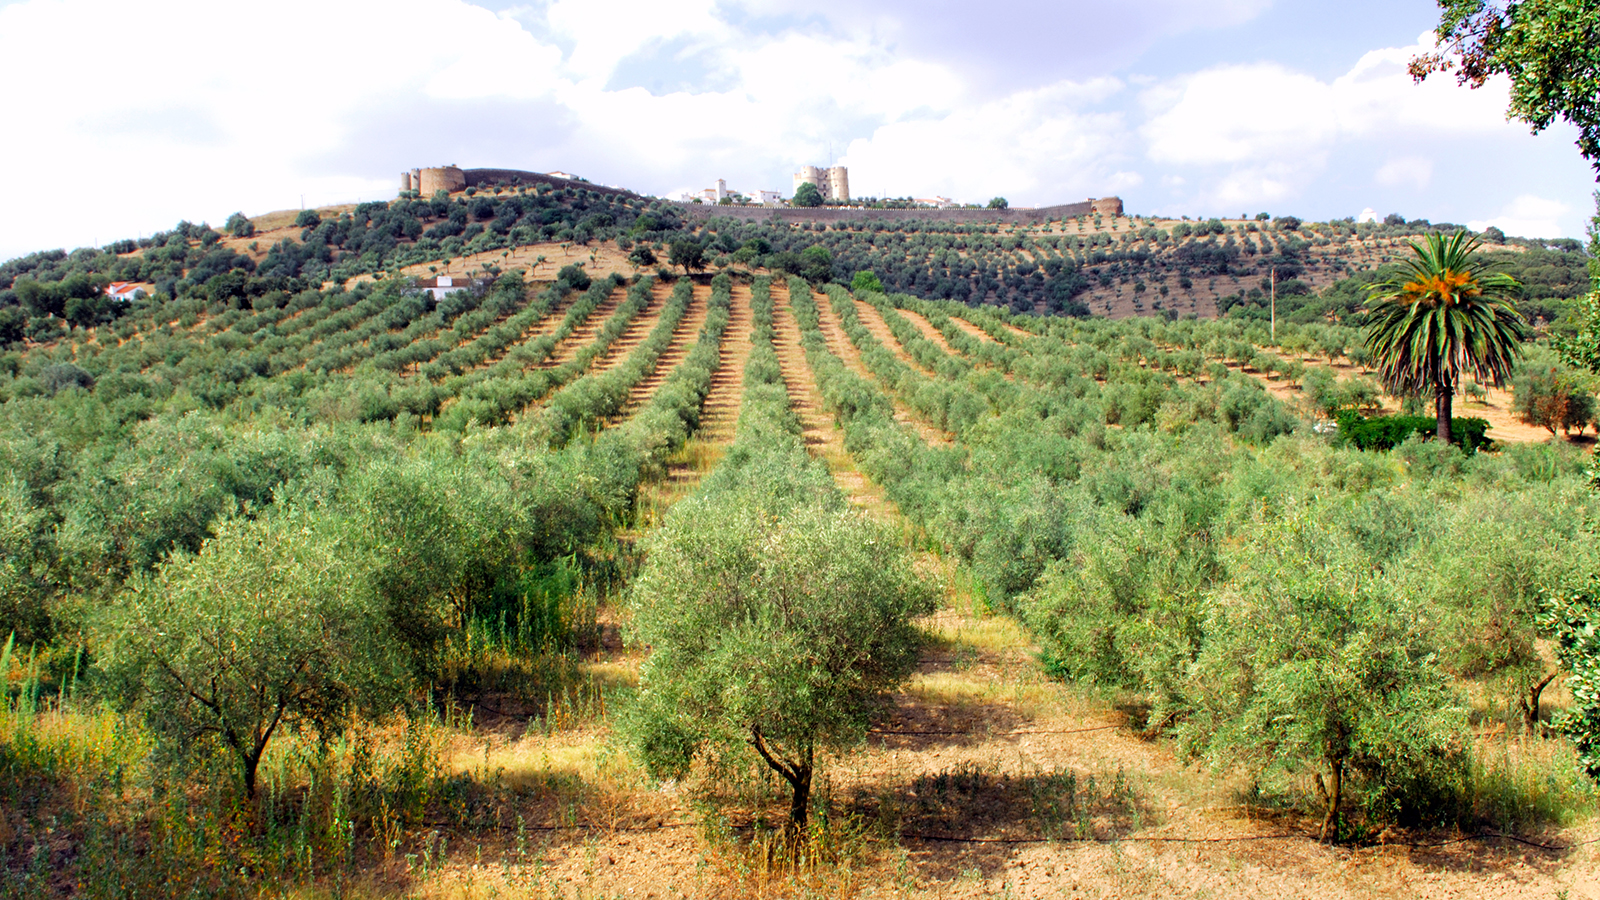 portugal-olive-trees.ngsversion.1412613051473.jpg